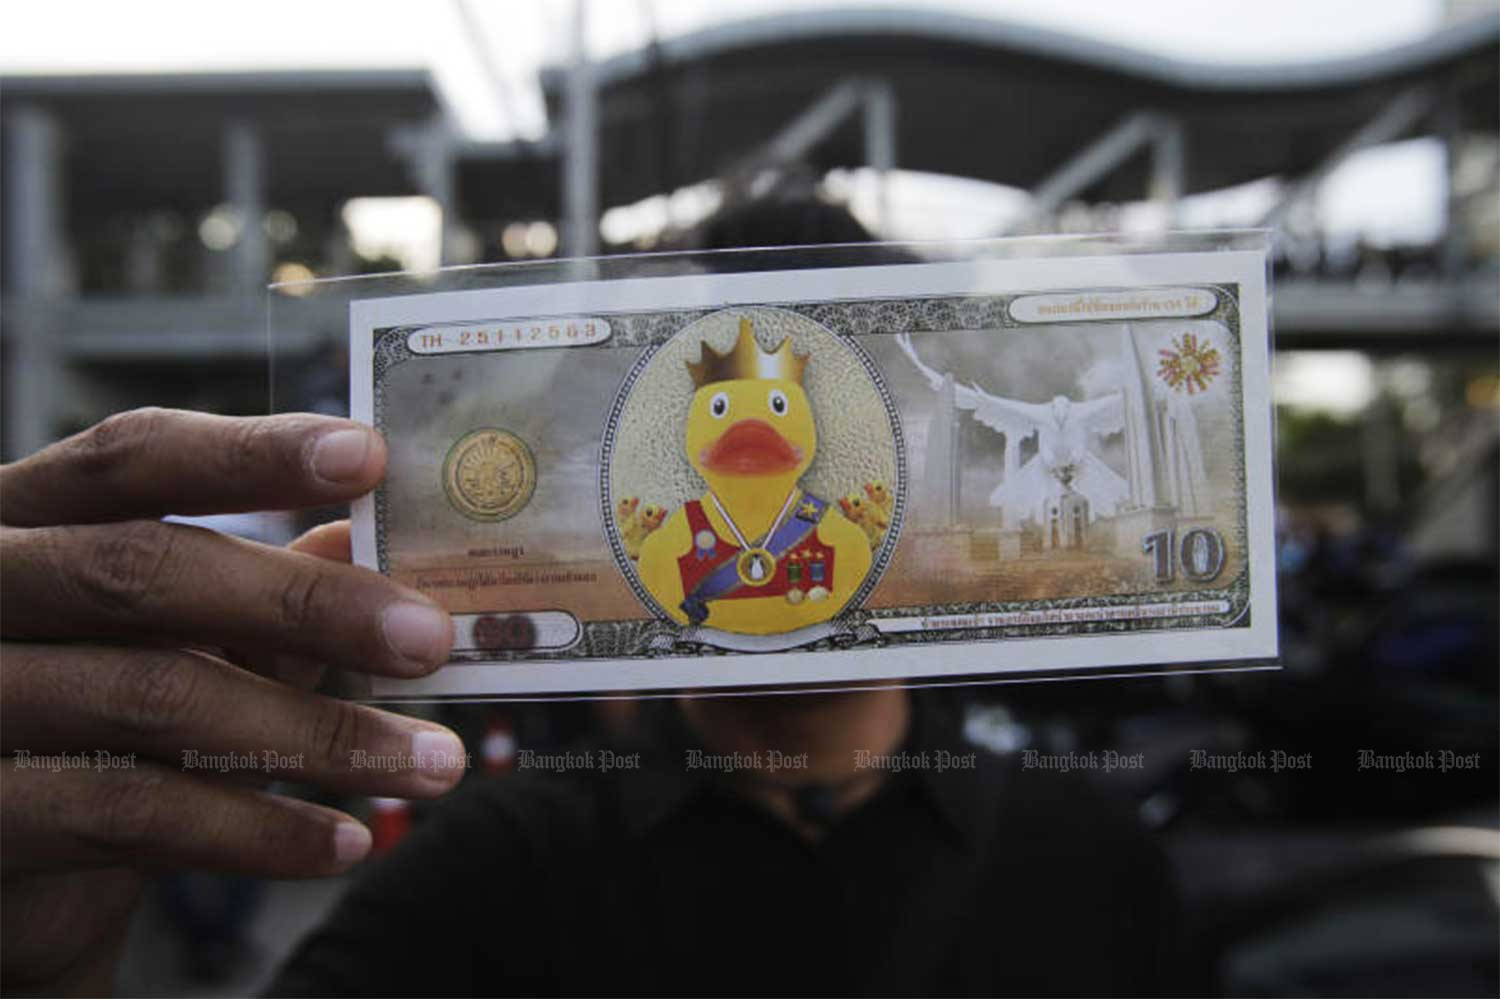 A demonstrator shows a yellow duck coupon for 10 baht handed out to people at the anti-government rally in front of SCB  Park, the headquarters of Siam Commercial Bank, in Bangkok's Chatuchak district on Wednesday evening.(Photo by  Arnun Chonmahatrakool)